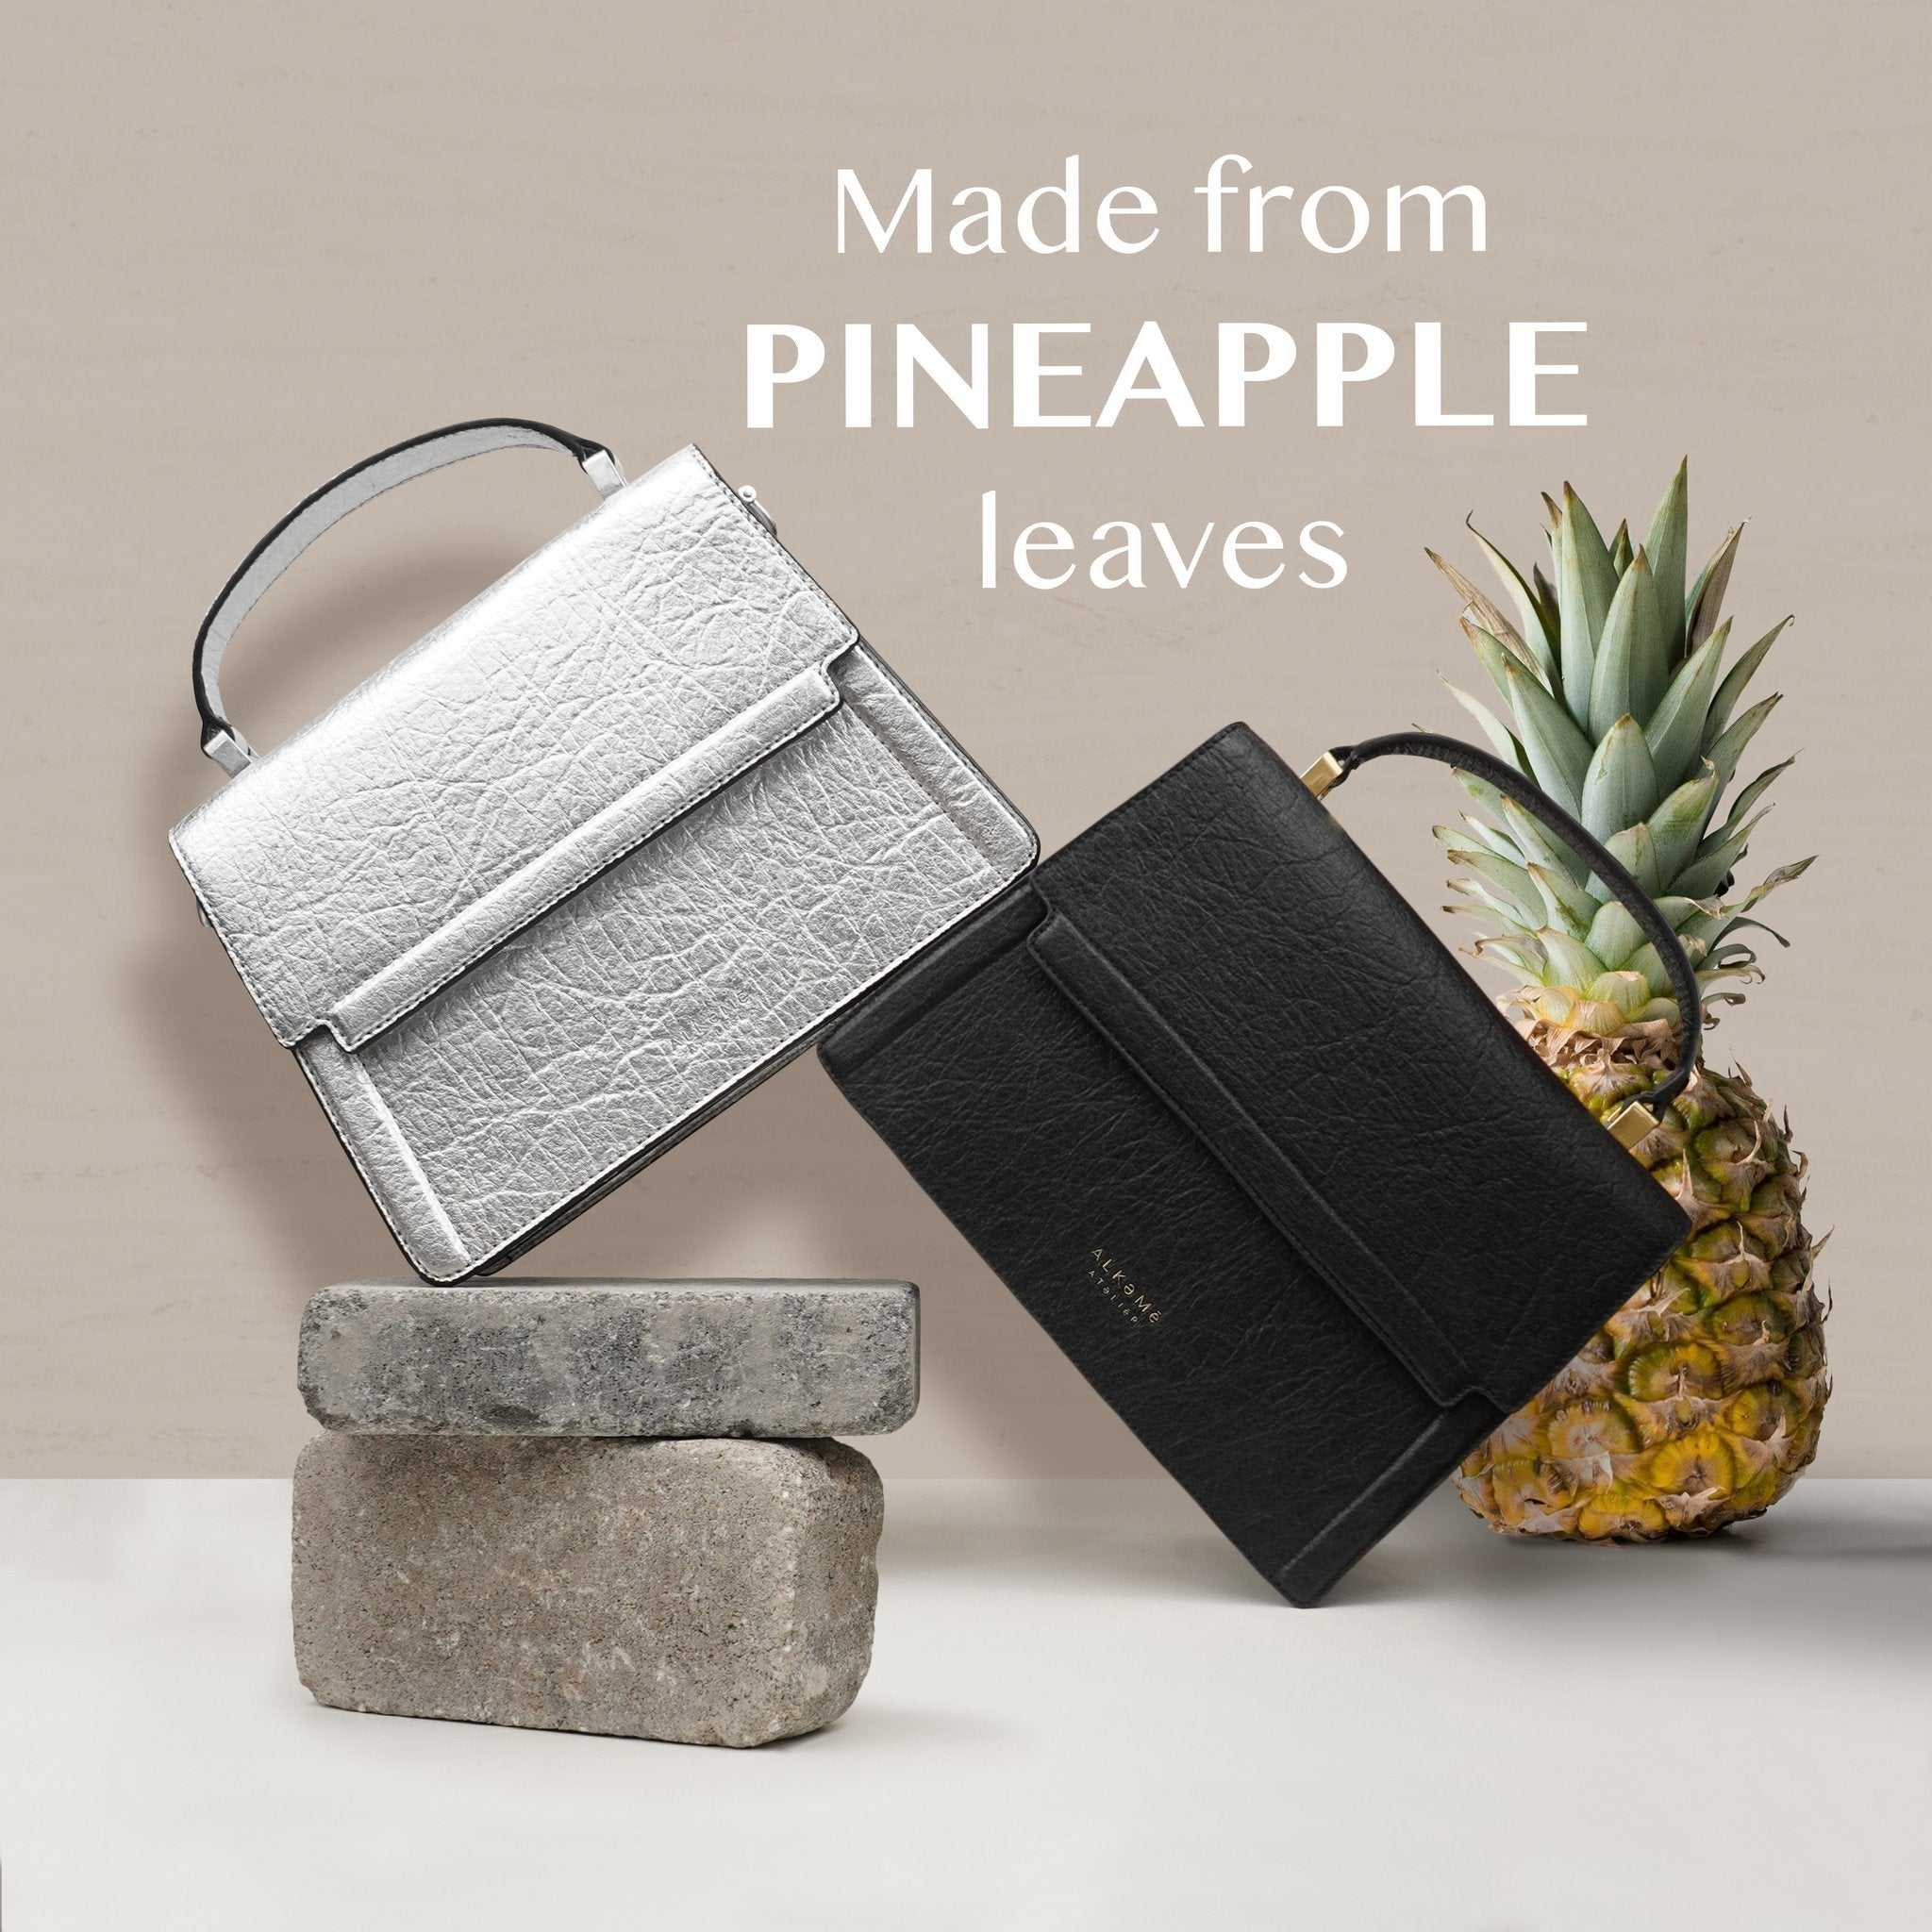 VEGAN LEATHER what is it?